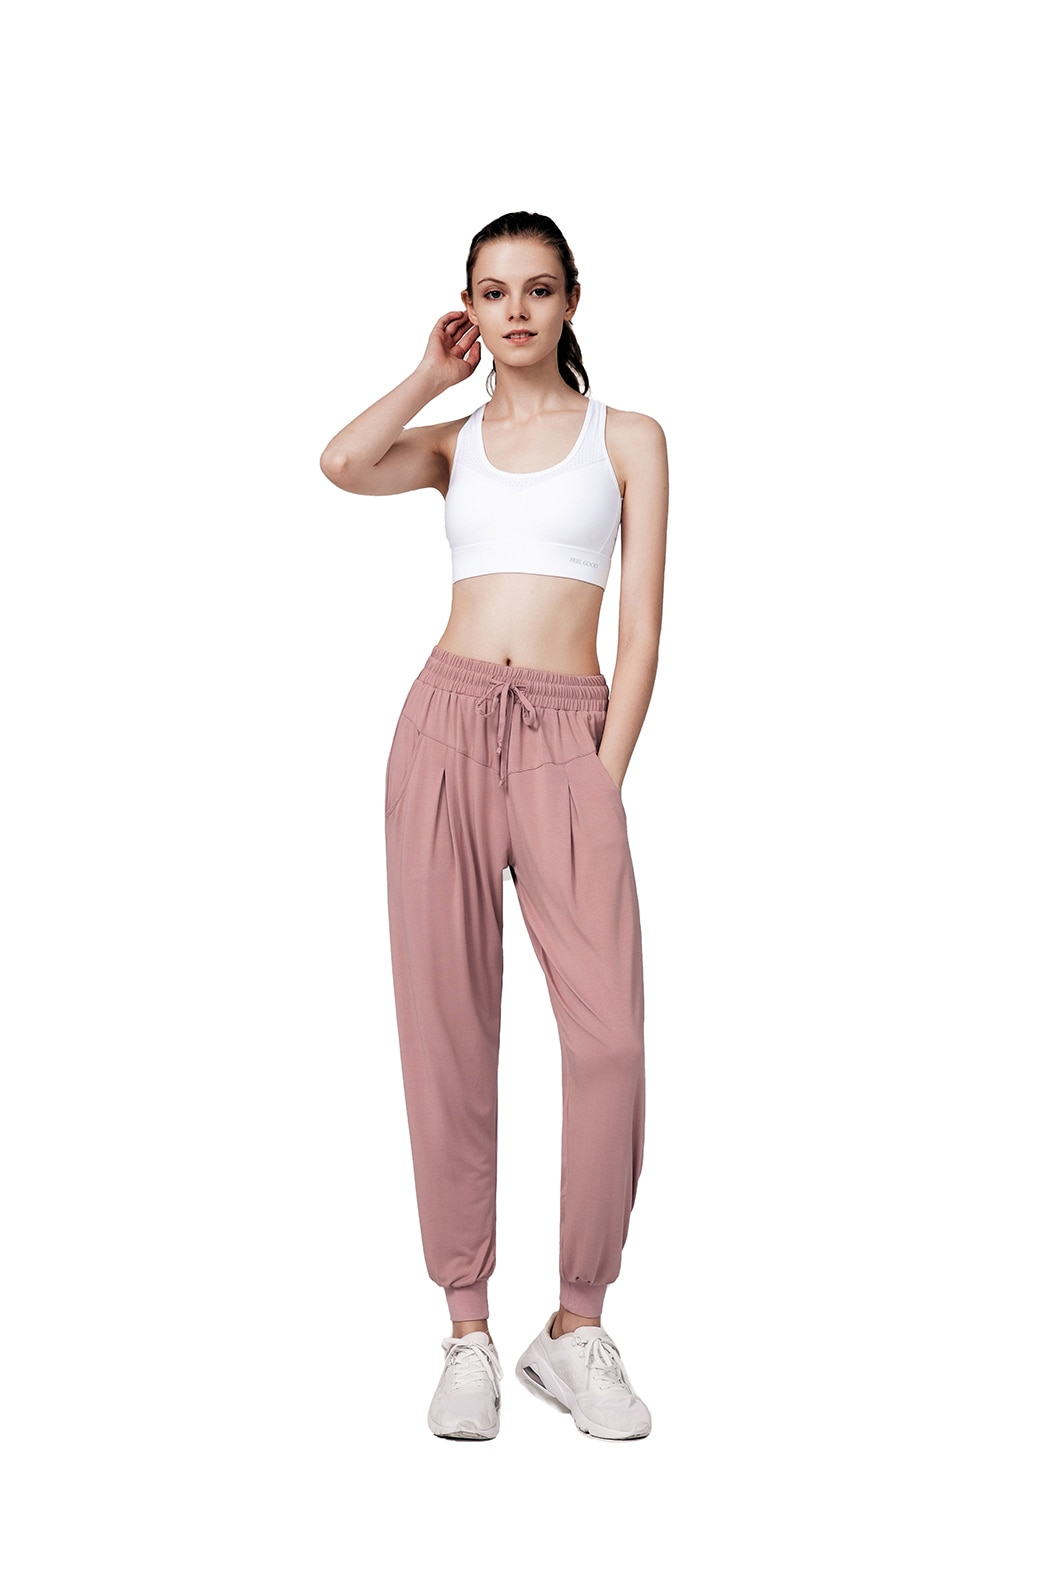 Sweatpants for Women with Pockets Yoga Athletic Workout Pants High Waist Joggers LightweightSweat